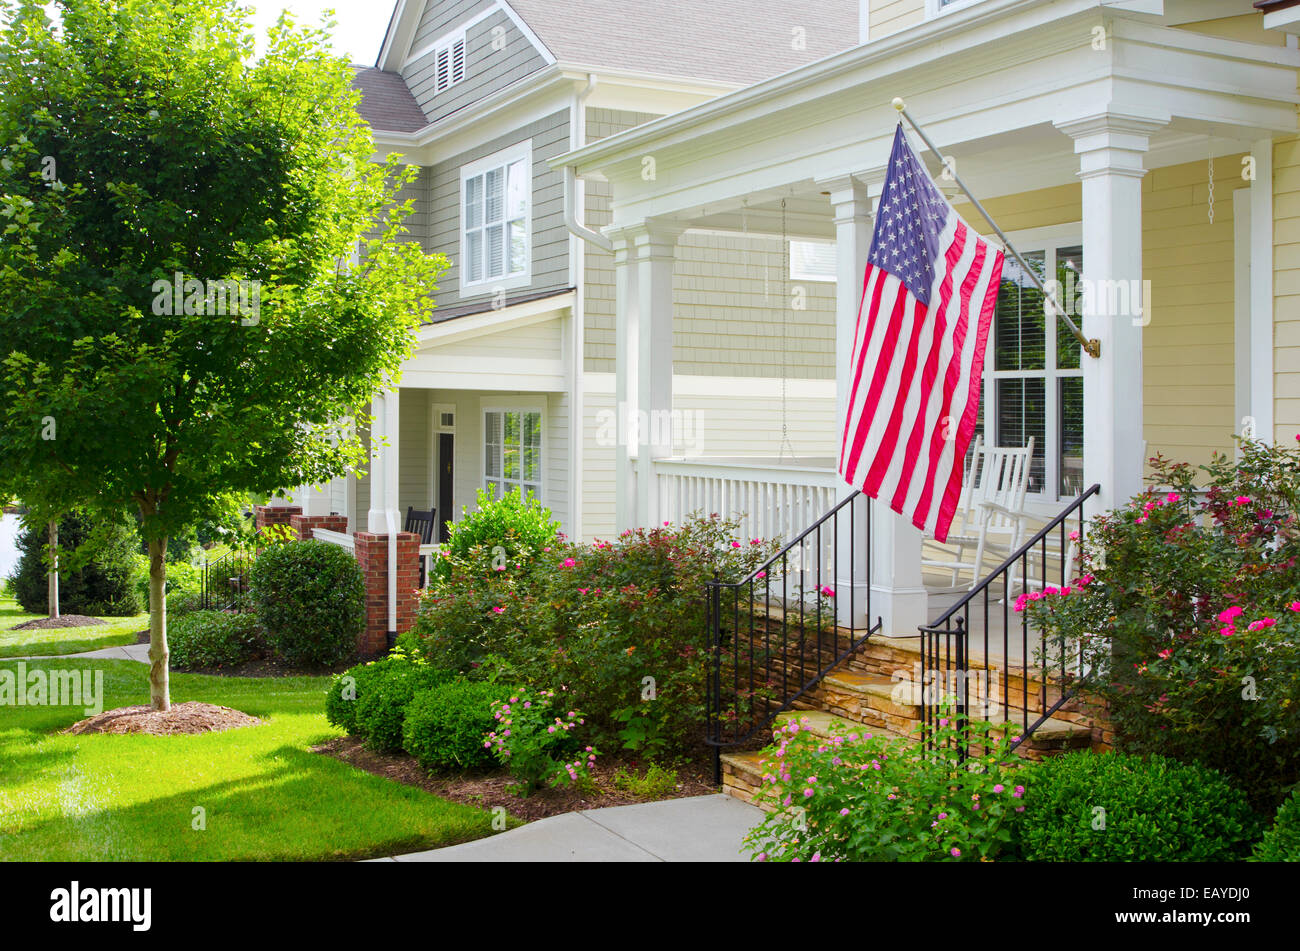 An American Flag Hangs From A Front Porch In A